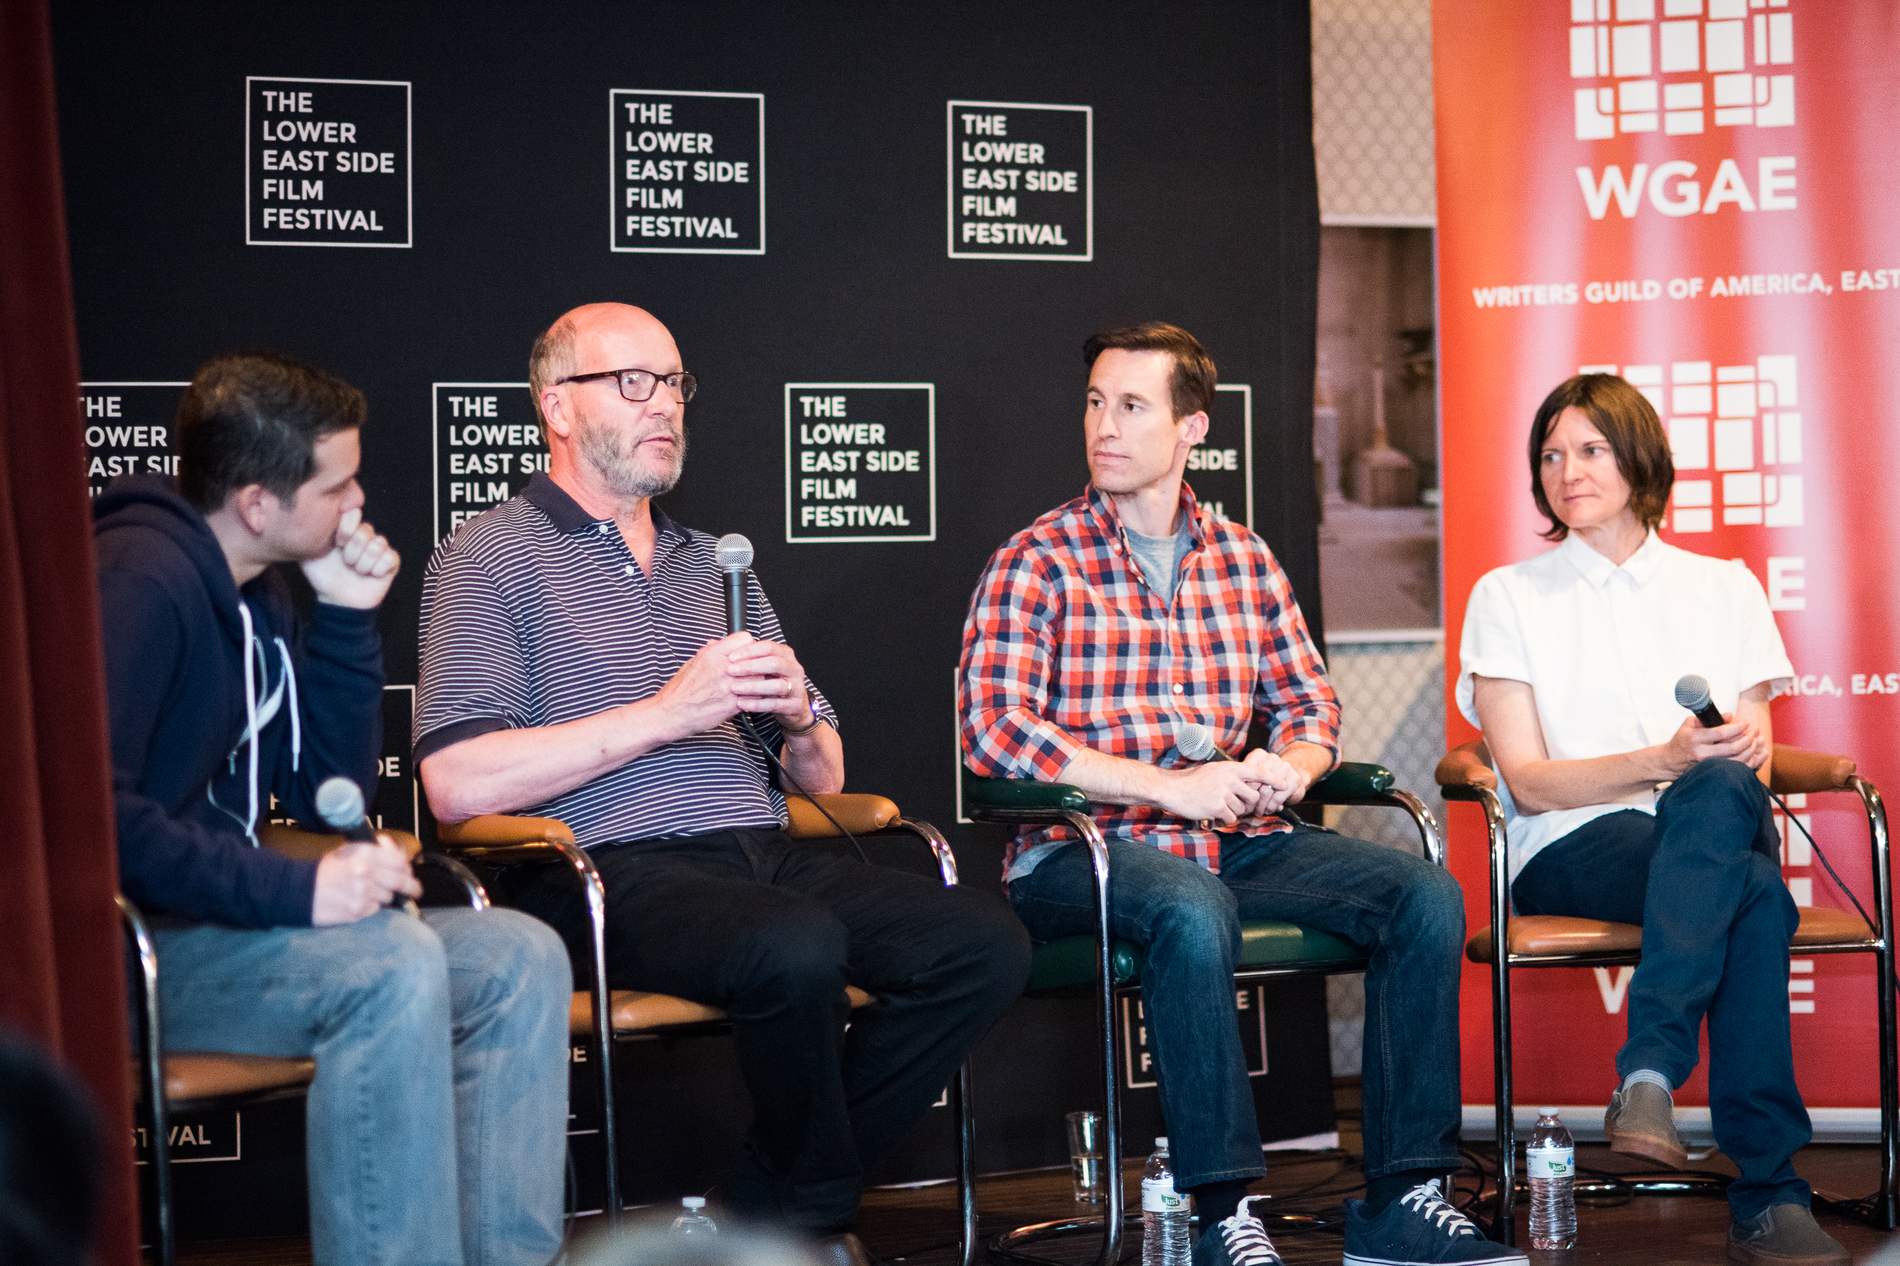 Filmmakers panel at NYC Lower East Side Film Fest